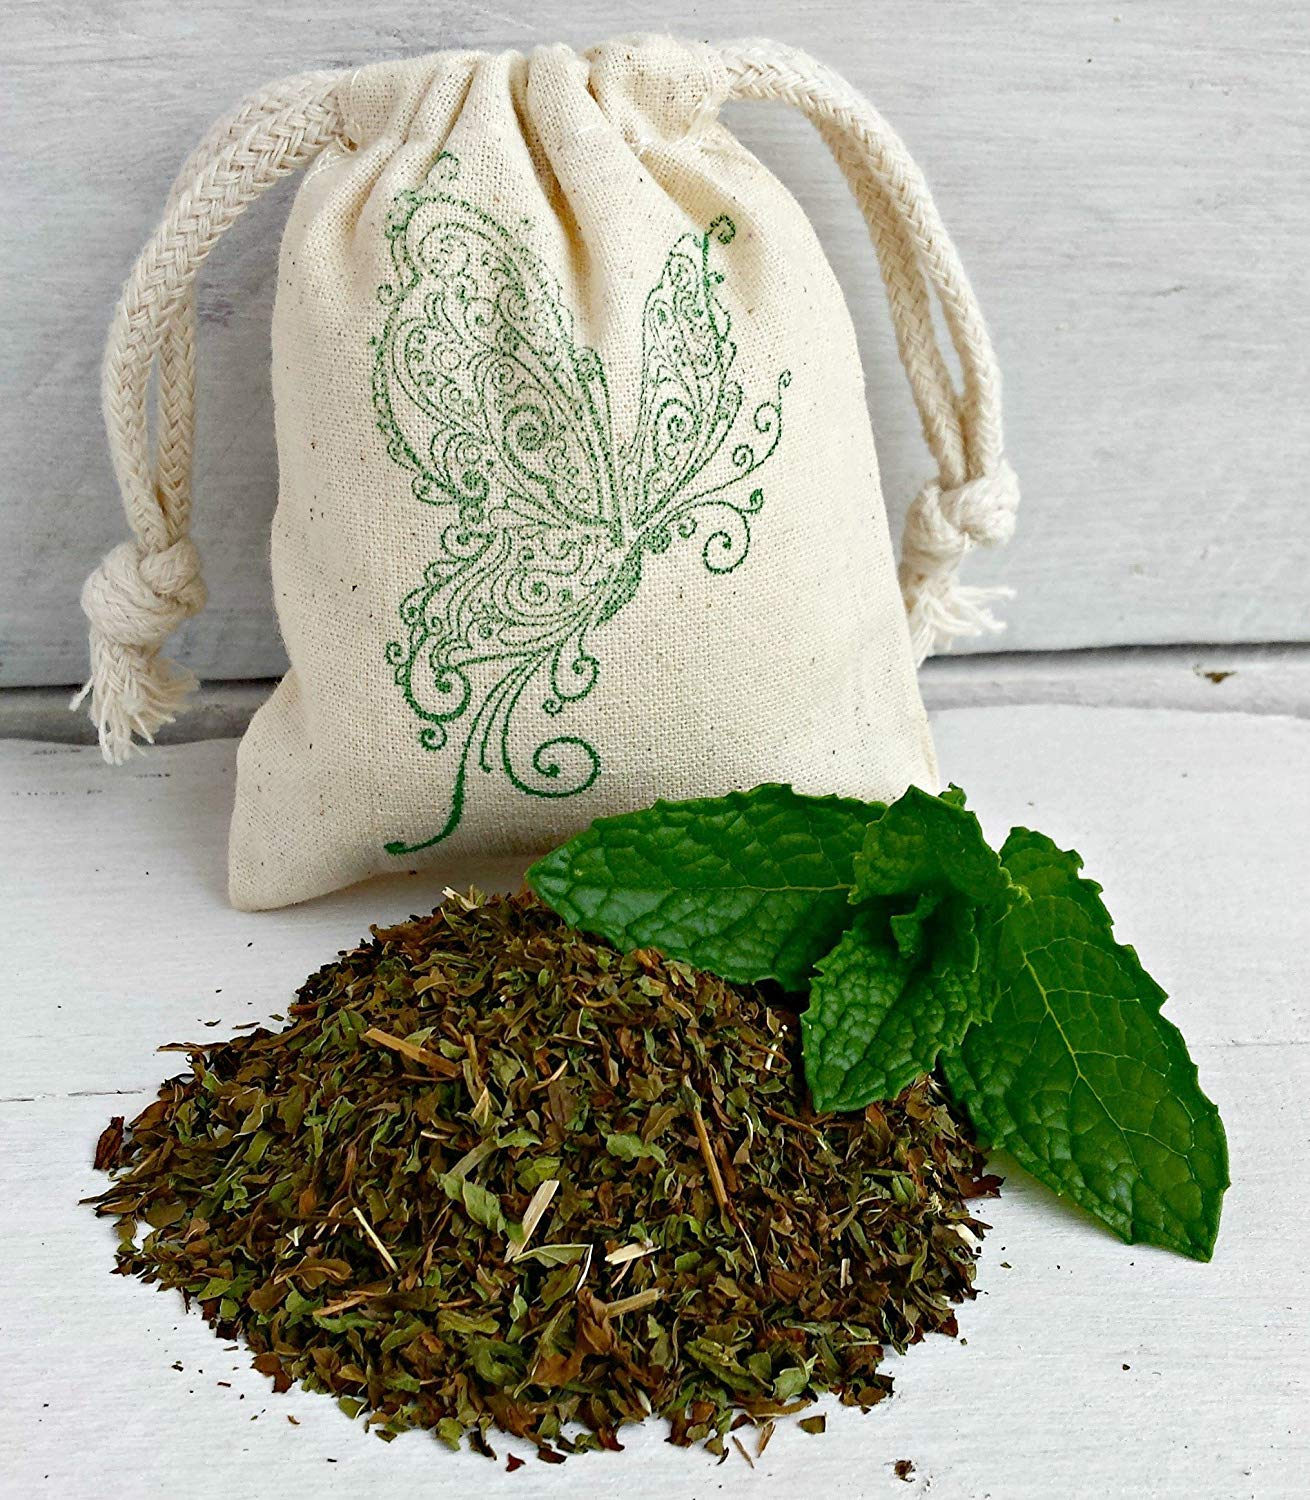 Mint Sachet | Mint Aromatherapy | Peppermint Sachets | Mint Air Freshener | All Natural Mint Sachets | Favor Bags | Spearmint Sachet Bags